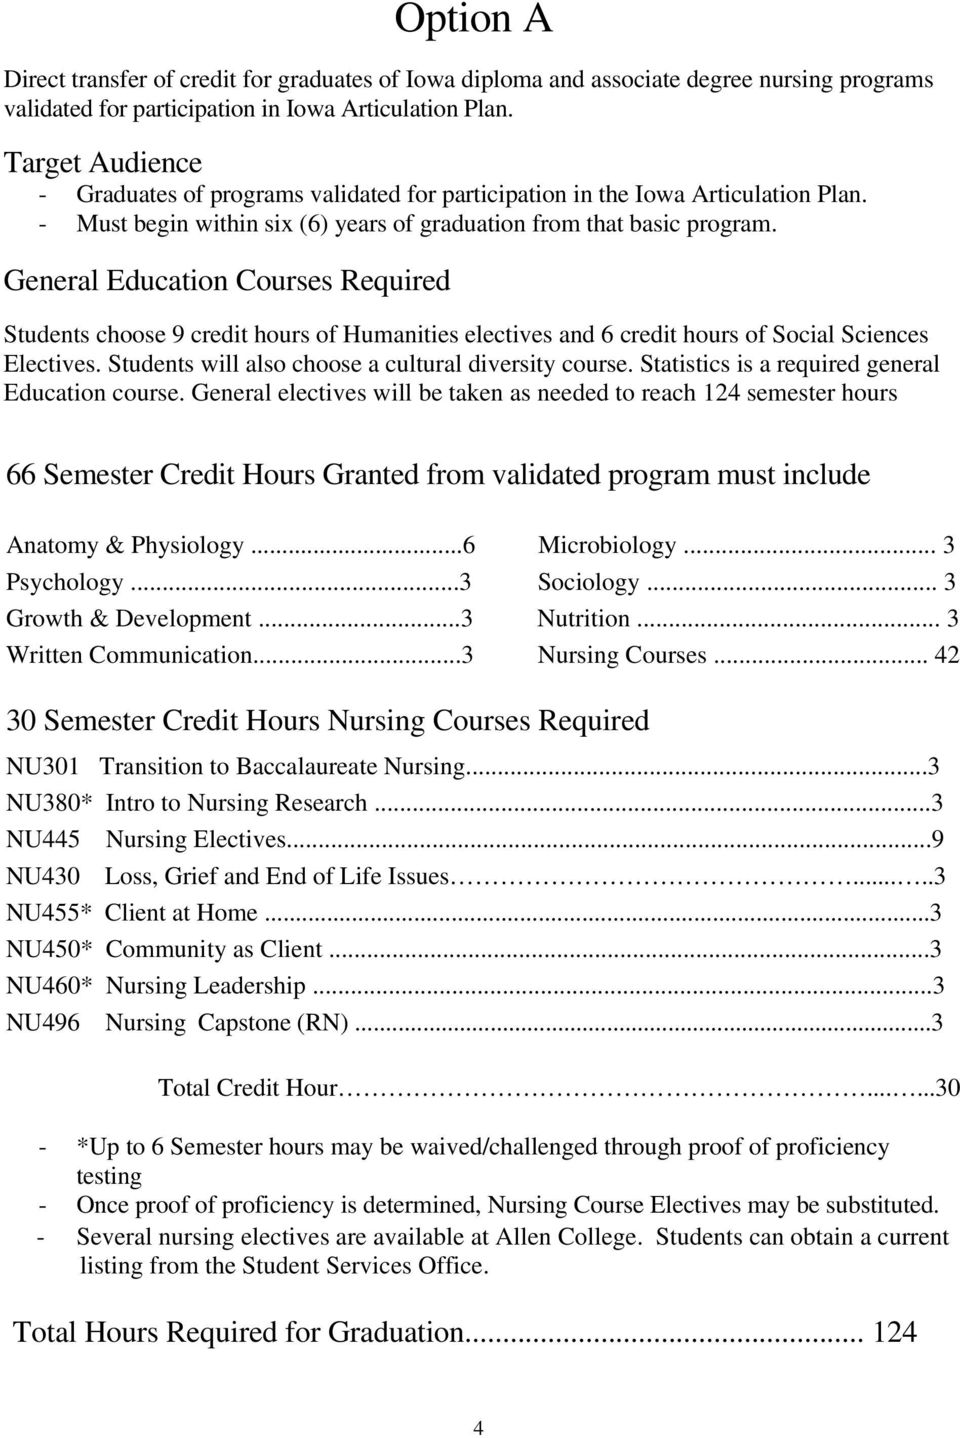 General Education Courses Required Students choose 9 credit hours of Humanities electives and 6 credit hours of Social Sciences Electives. Students will also choose a cultural diversity course.